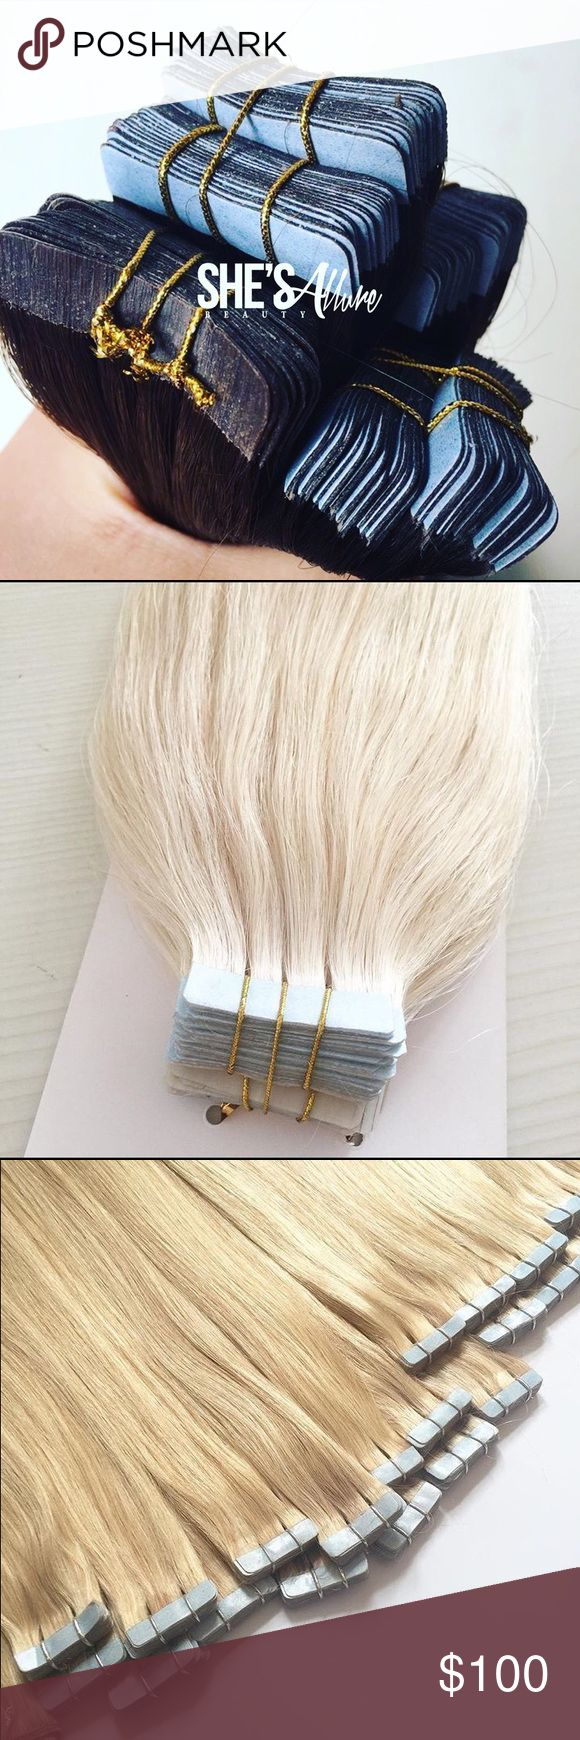 Virgin hair tape extensions Virgin hair tape extensions last call 18-24 inches. 16 inches are sold out. End of the month sale. US Shipping only. Prices vary per pack Jewelry